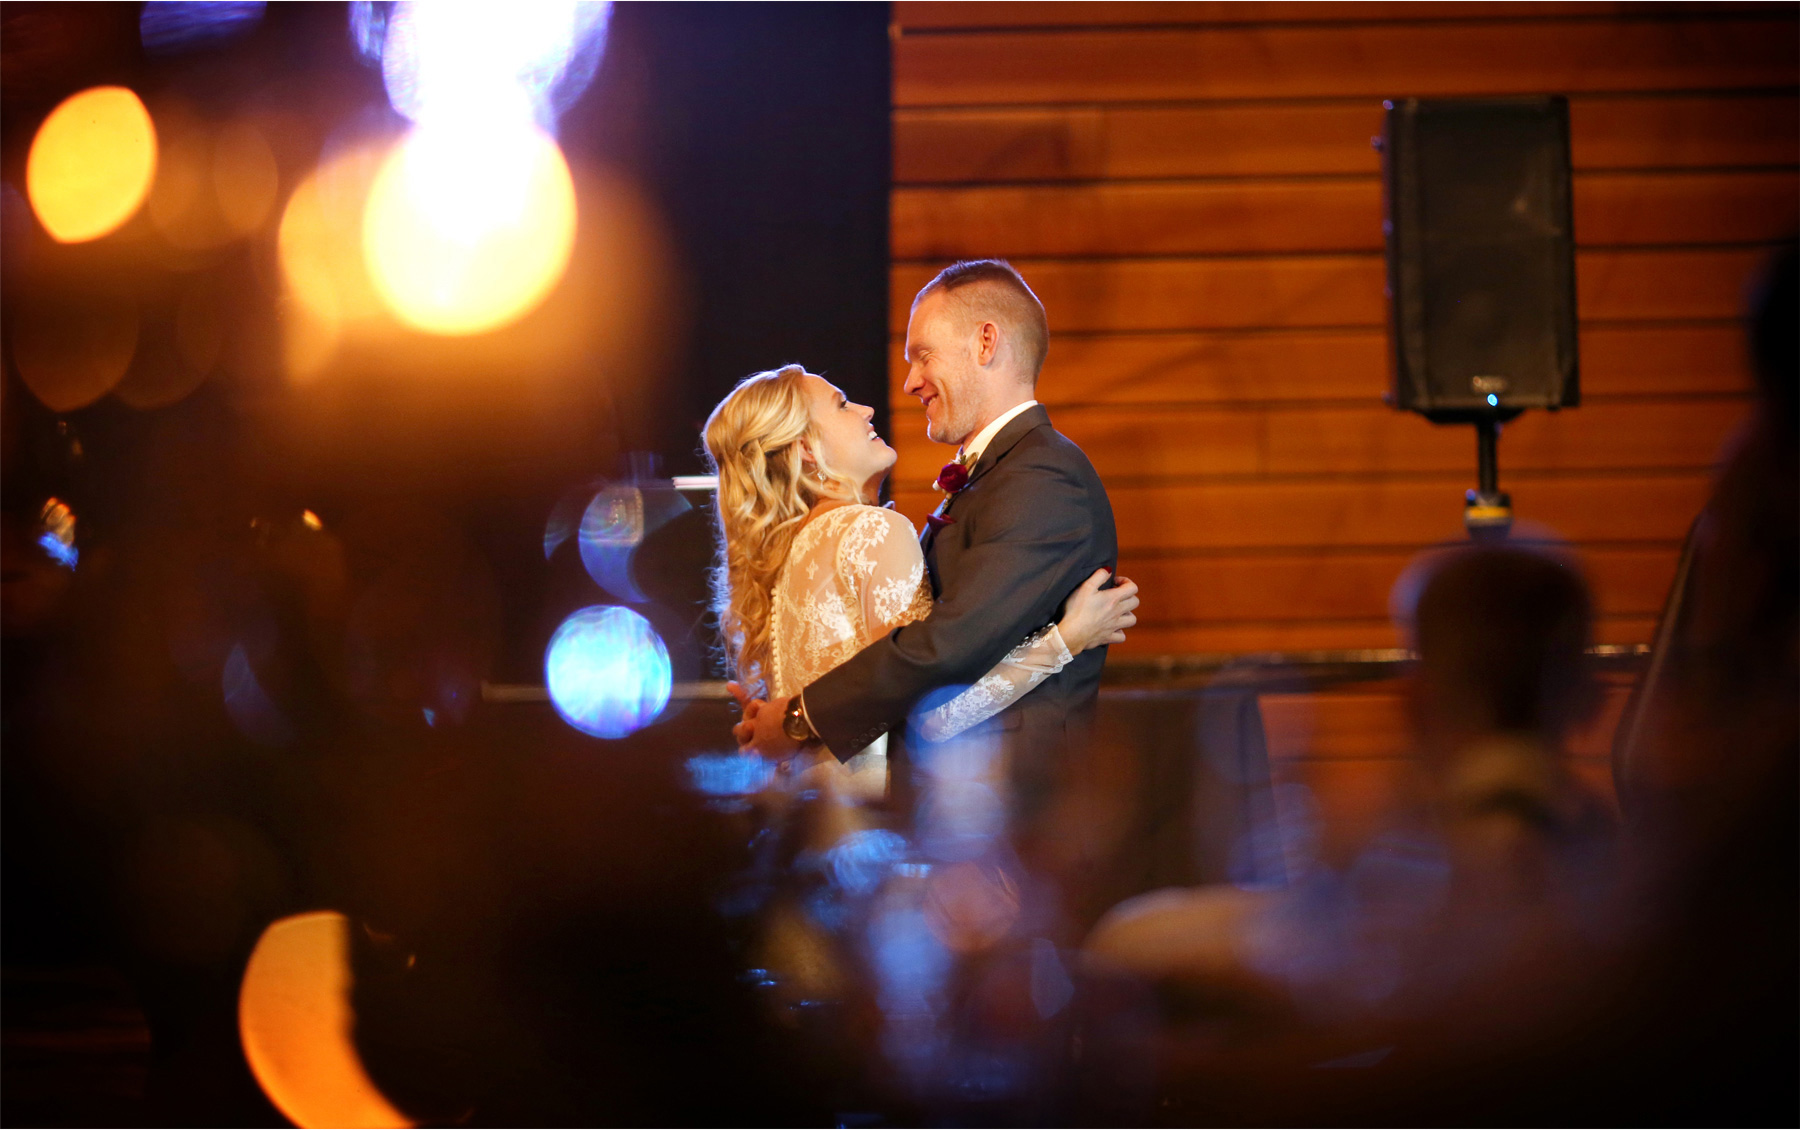 17-Minneapolis-Minnesota-Wedding-Photographer-by-Andrew-Vick-Photography-Winter-McNamara-Alumni-Center-Bride-Groom-Dance-Brittany-and-Joseph.jpg